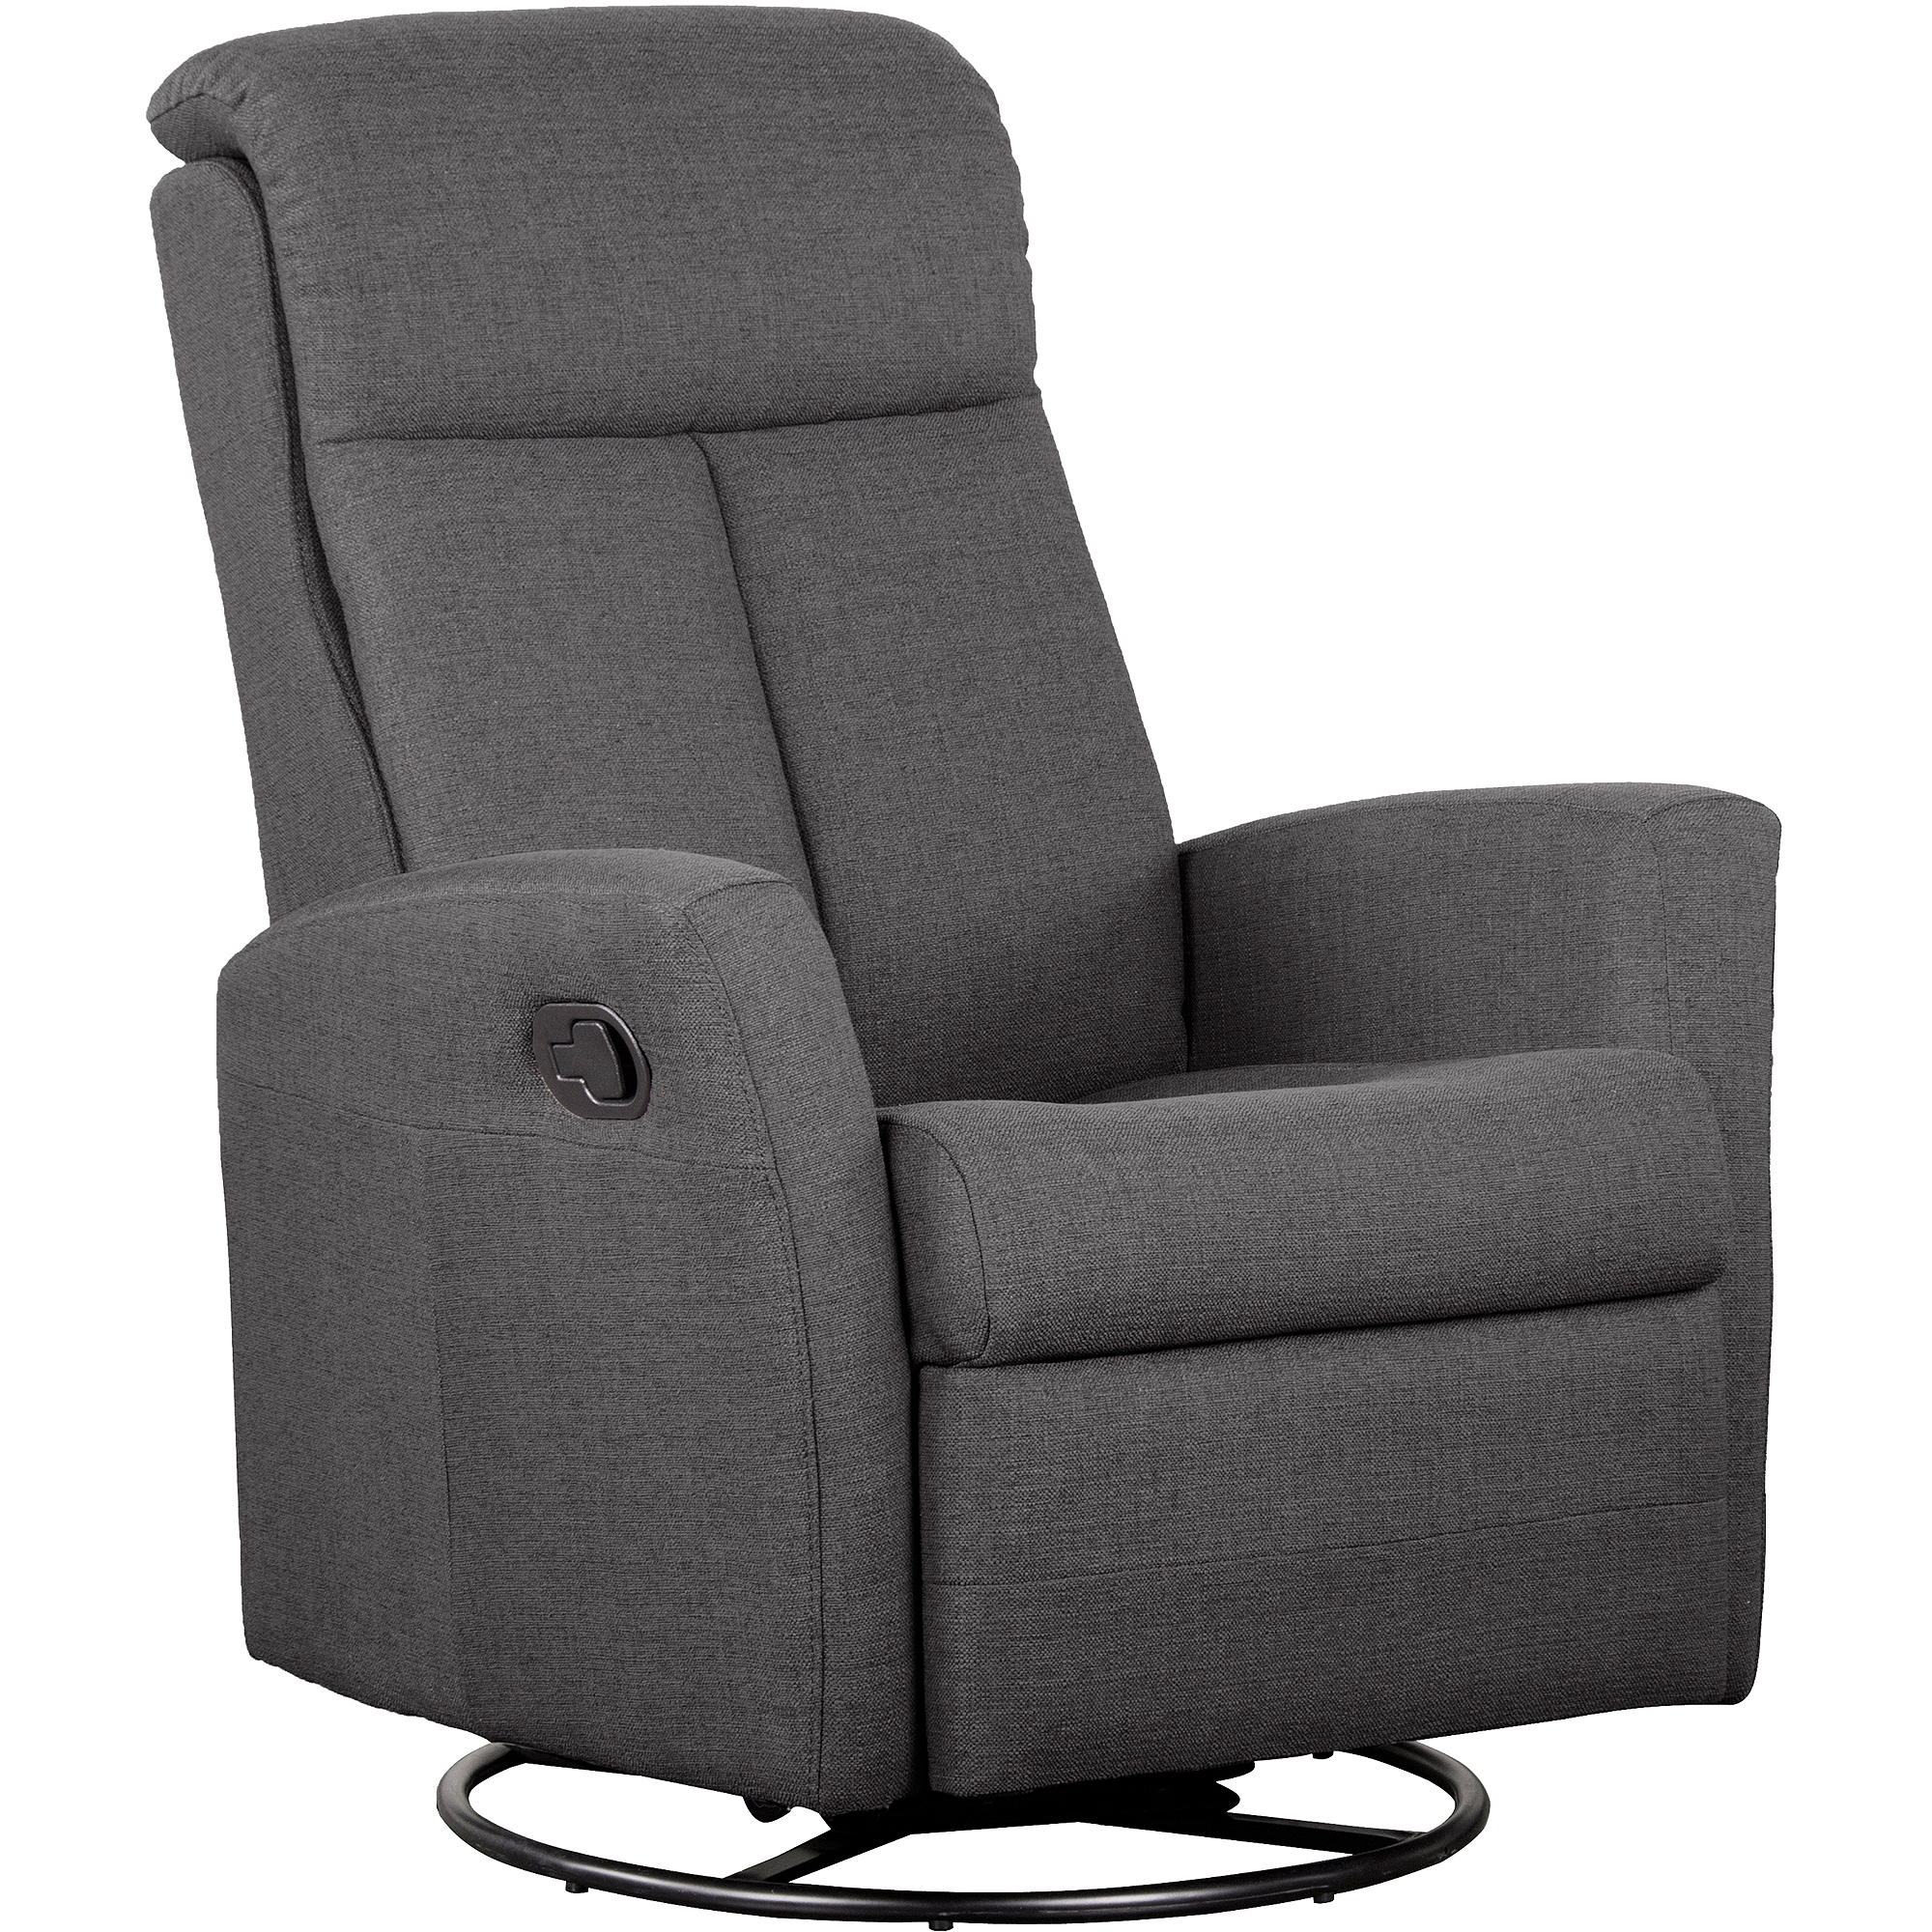 SherMag Motion Glider Swivel Recliner, Fabric, Charcoal by Shermag